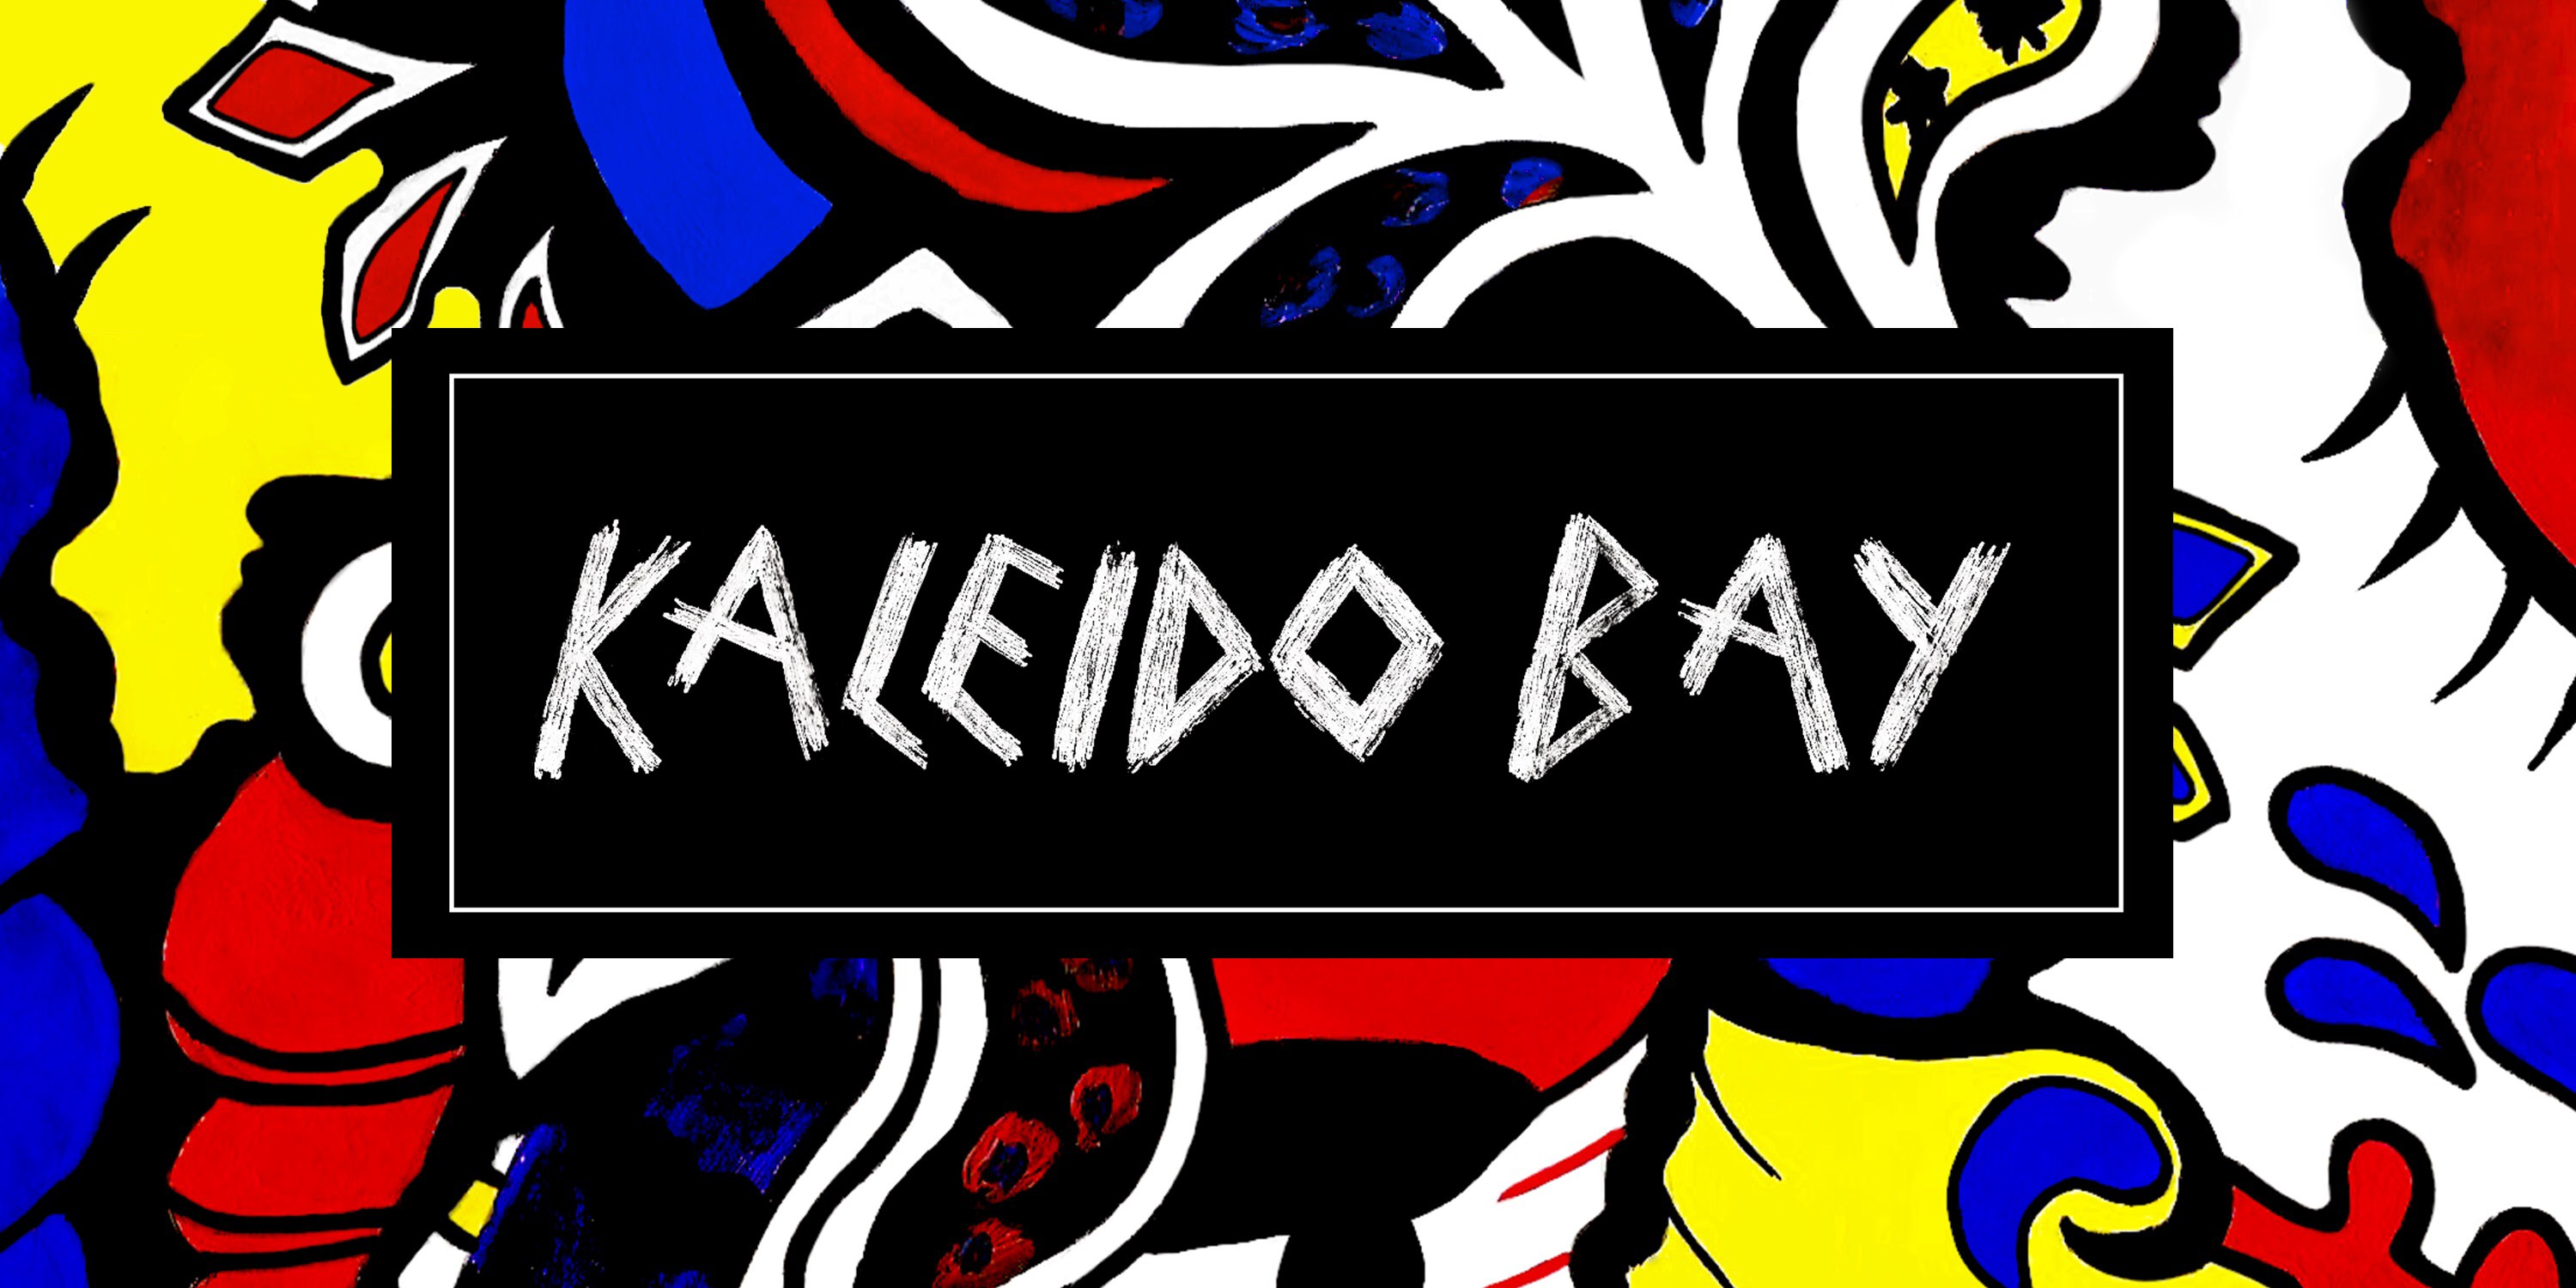 Kaleido Bay Band